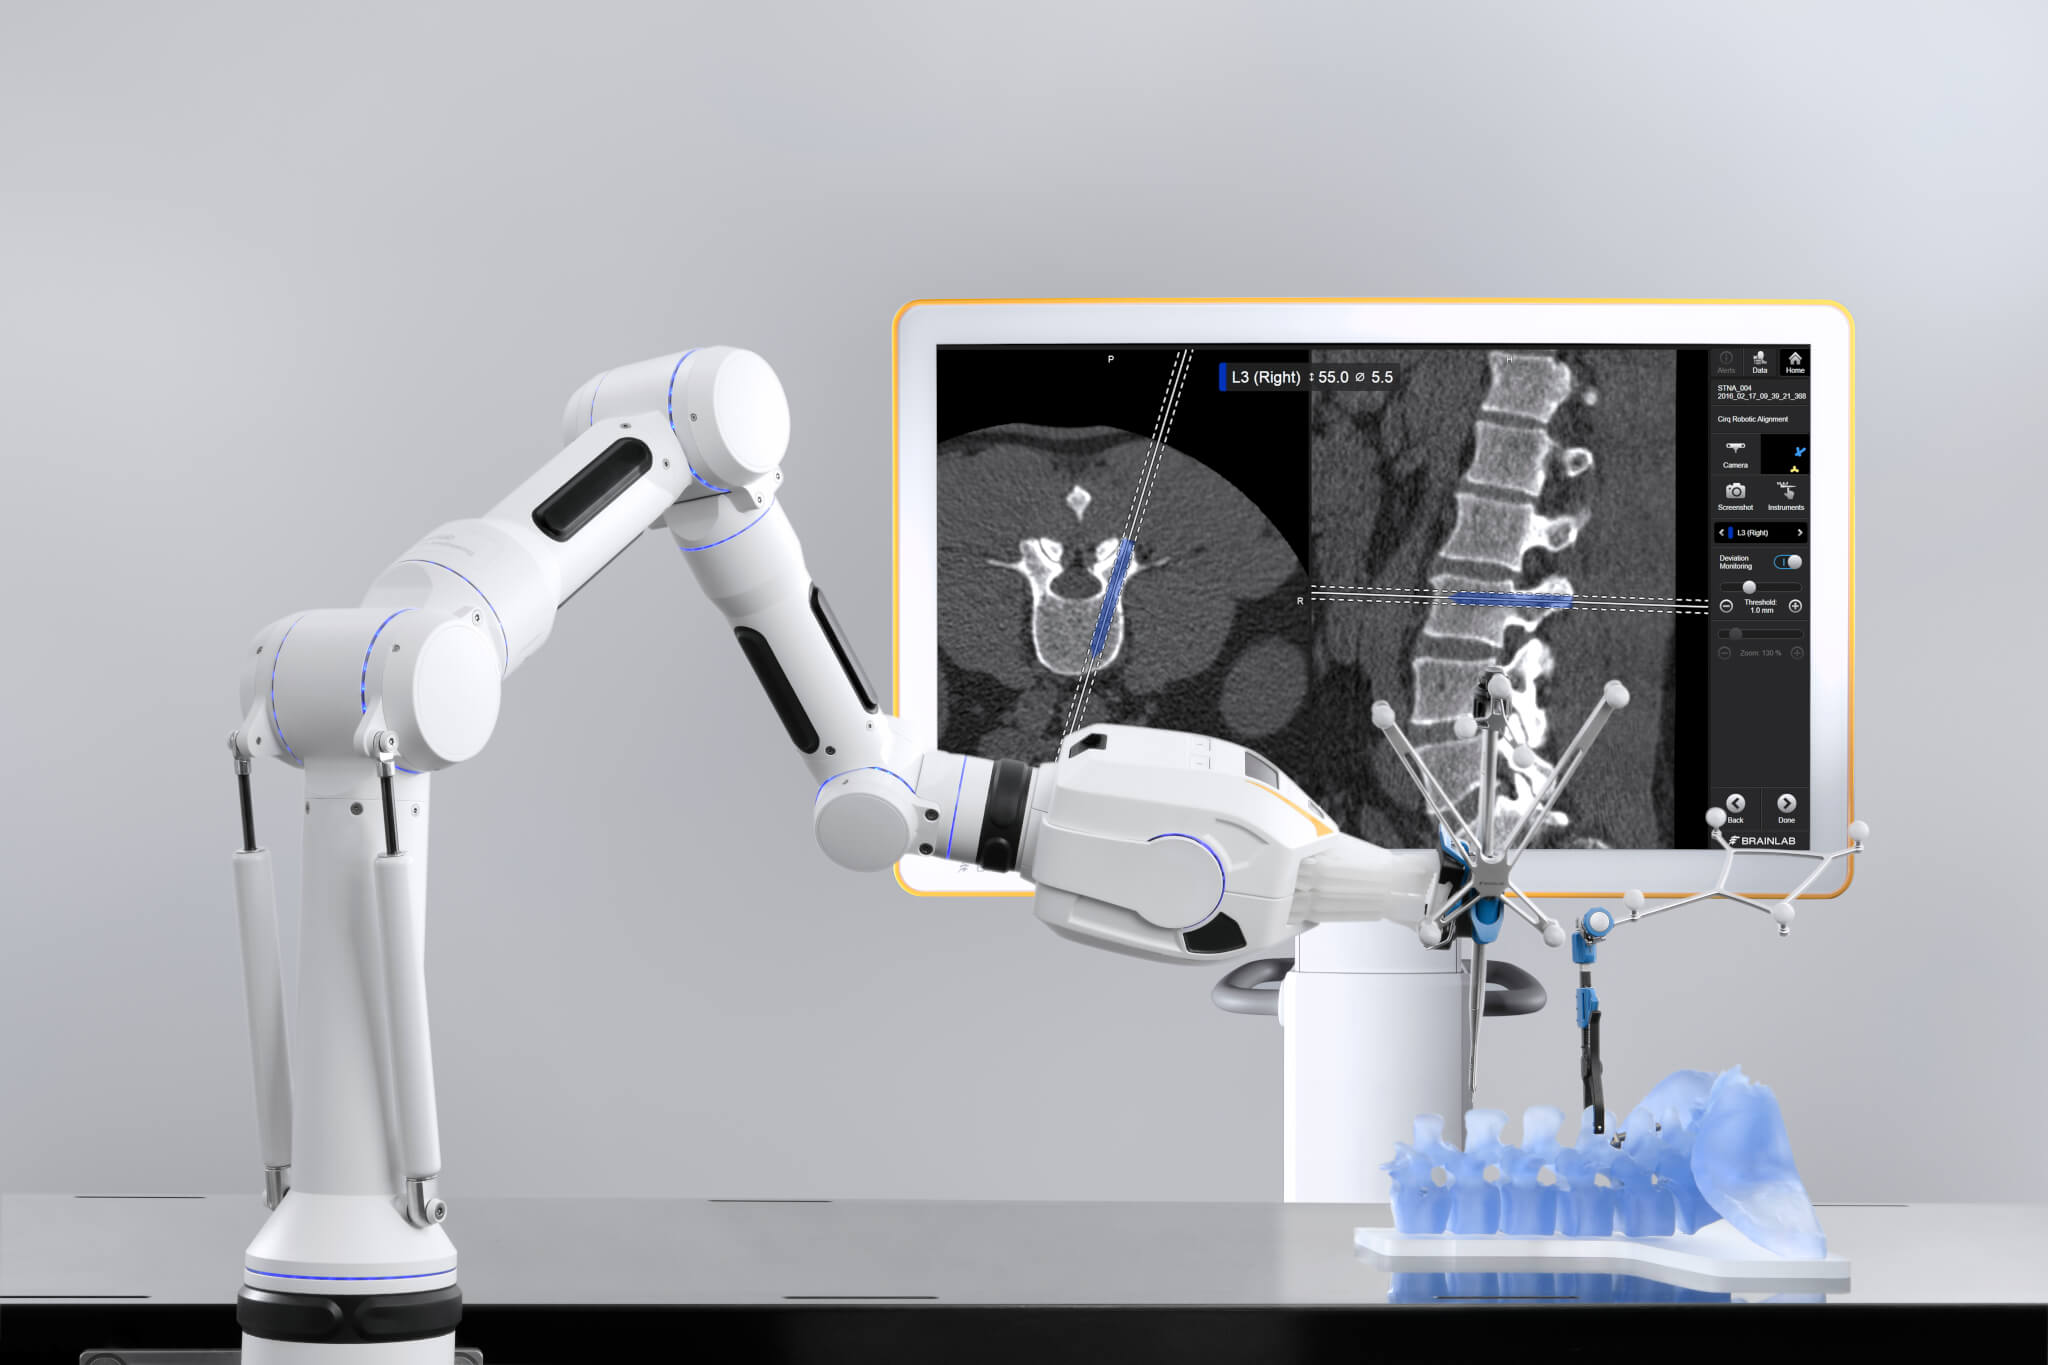 Robotic spine surgery with Cirq surgical assistant